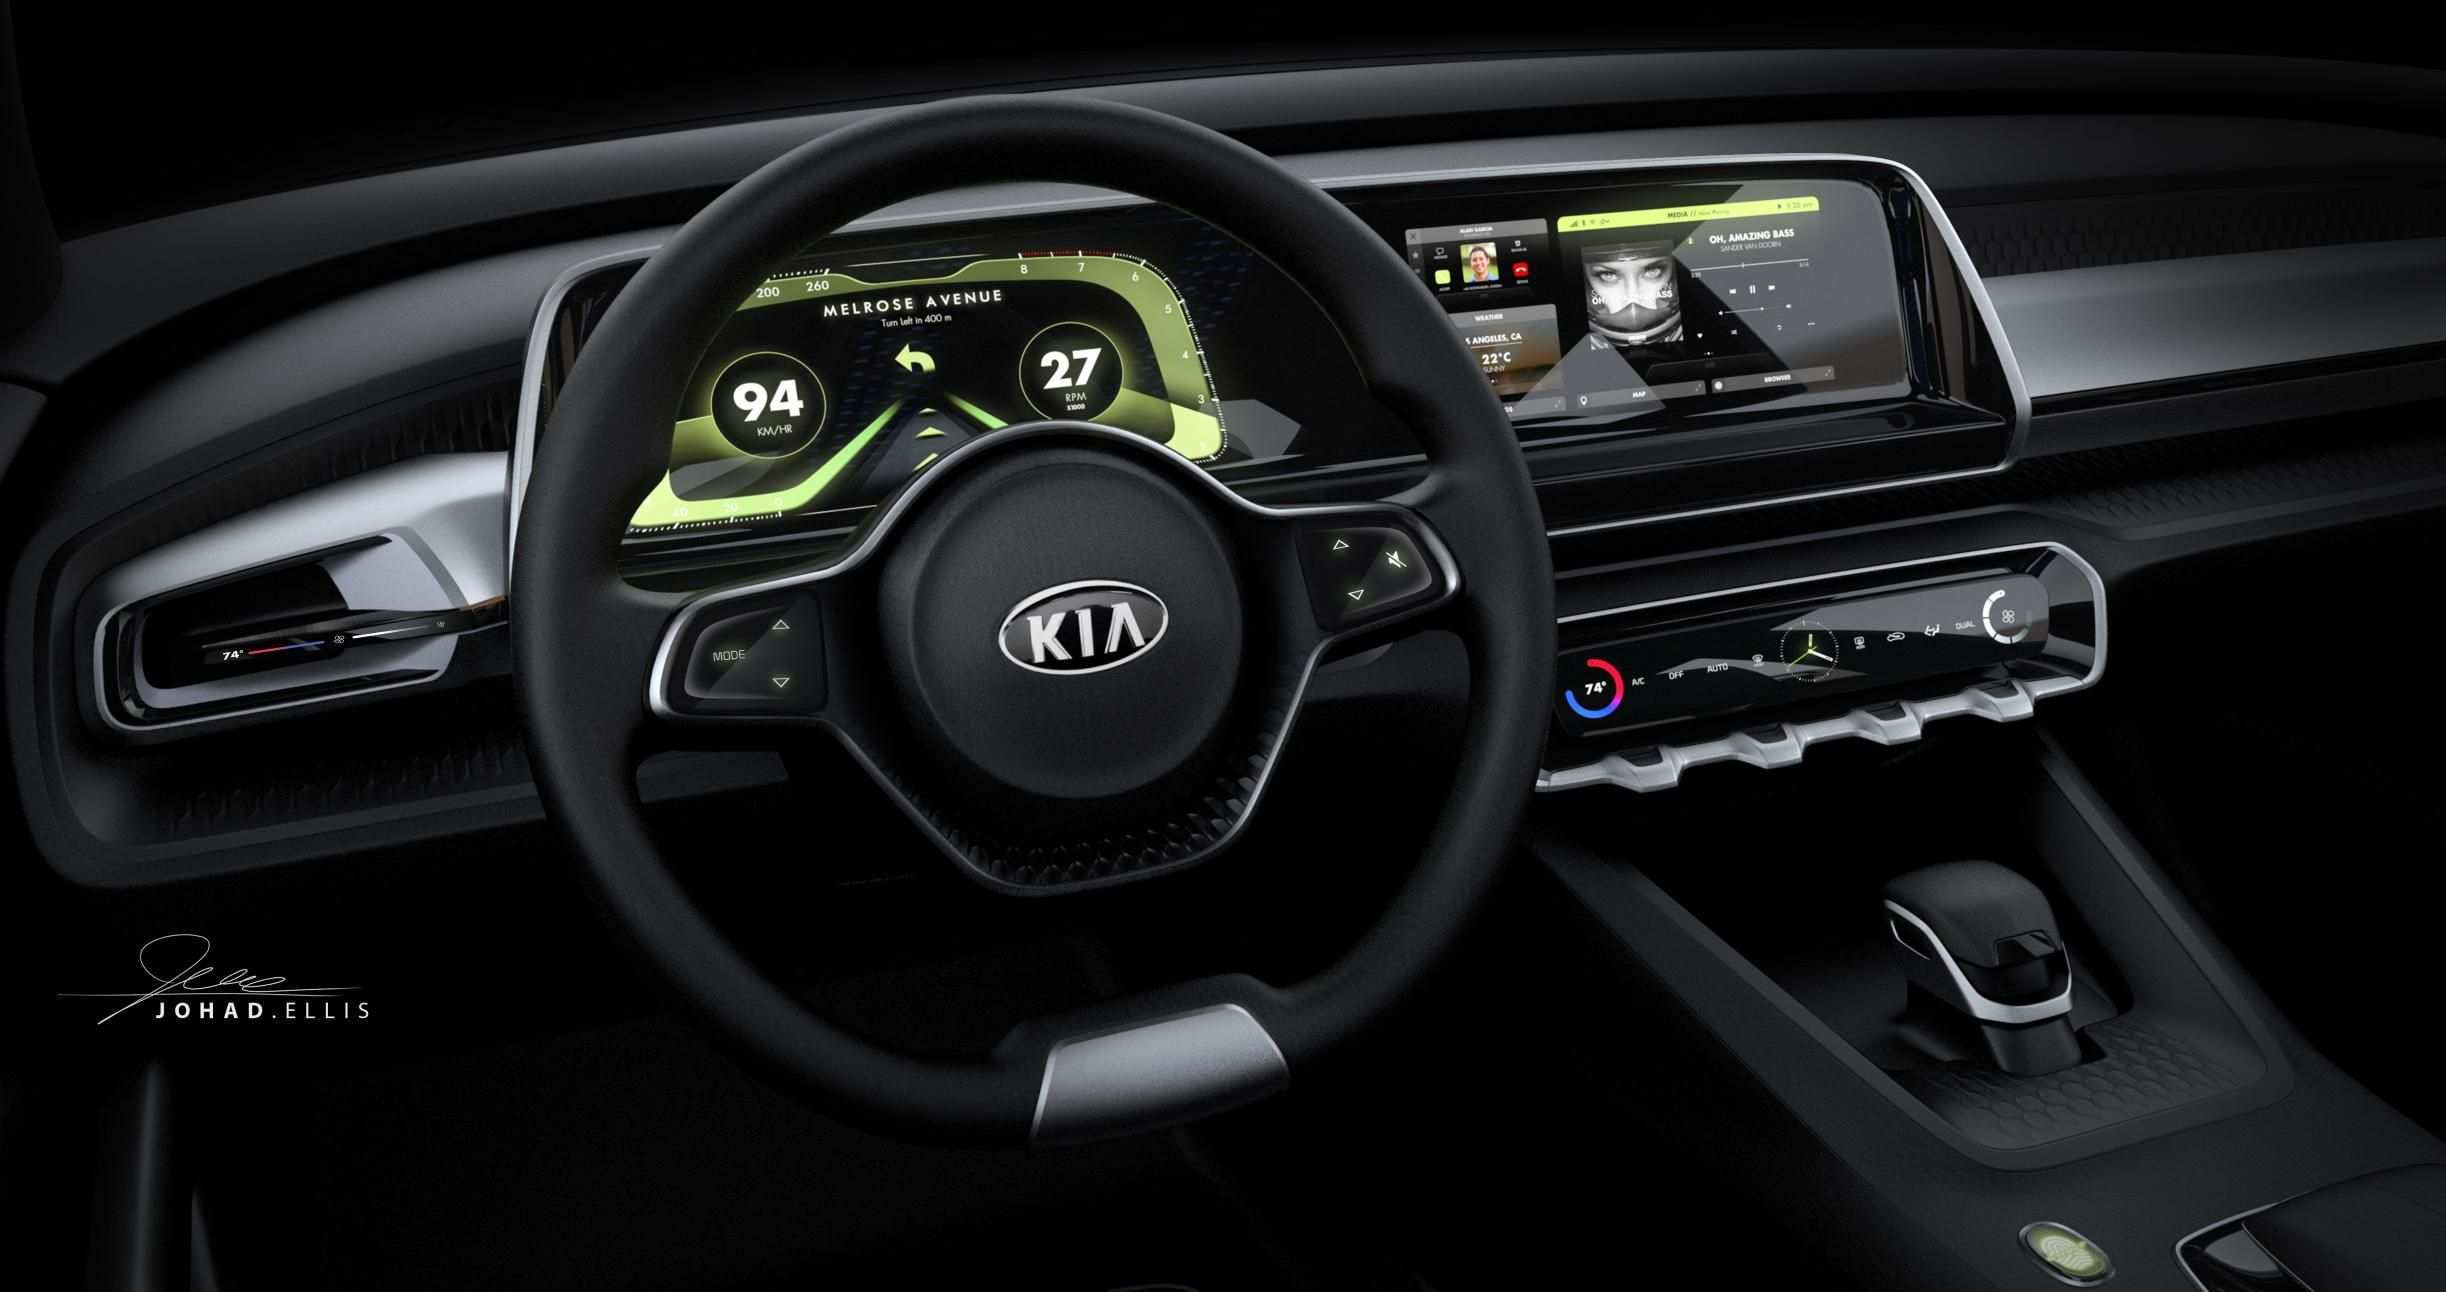 57 The Kia Cerato 2019 Interior Specs